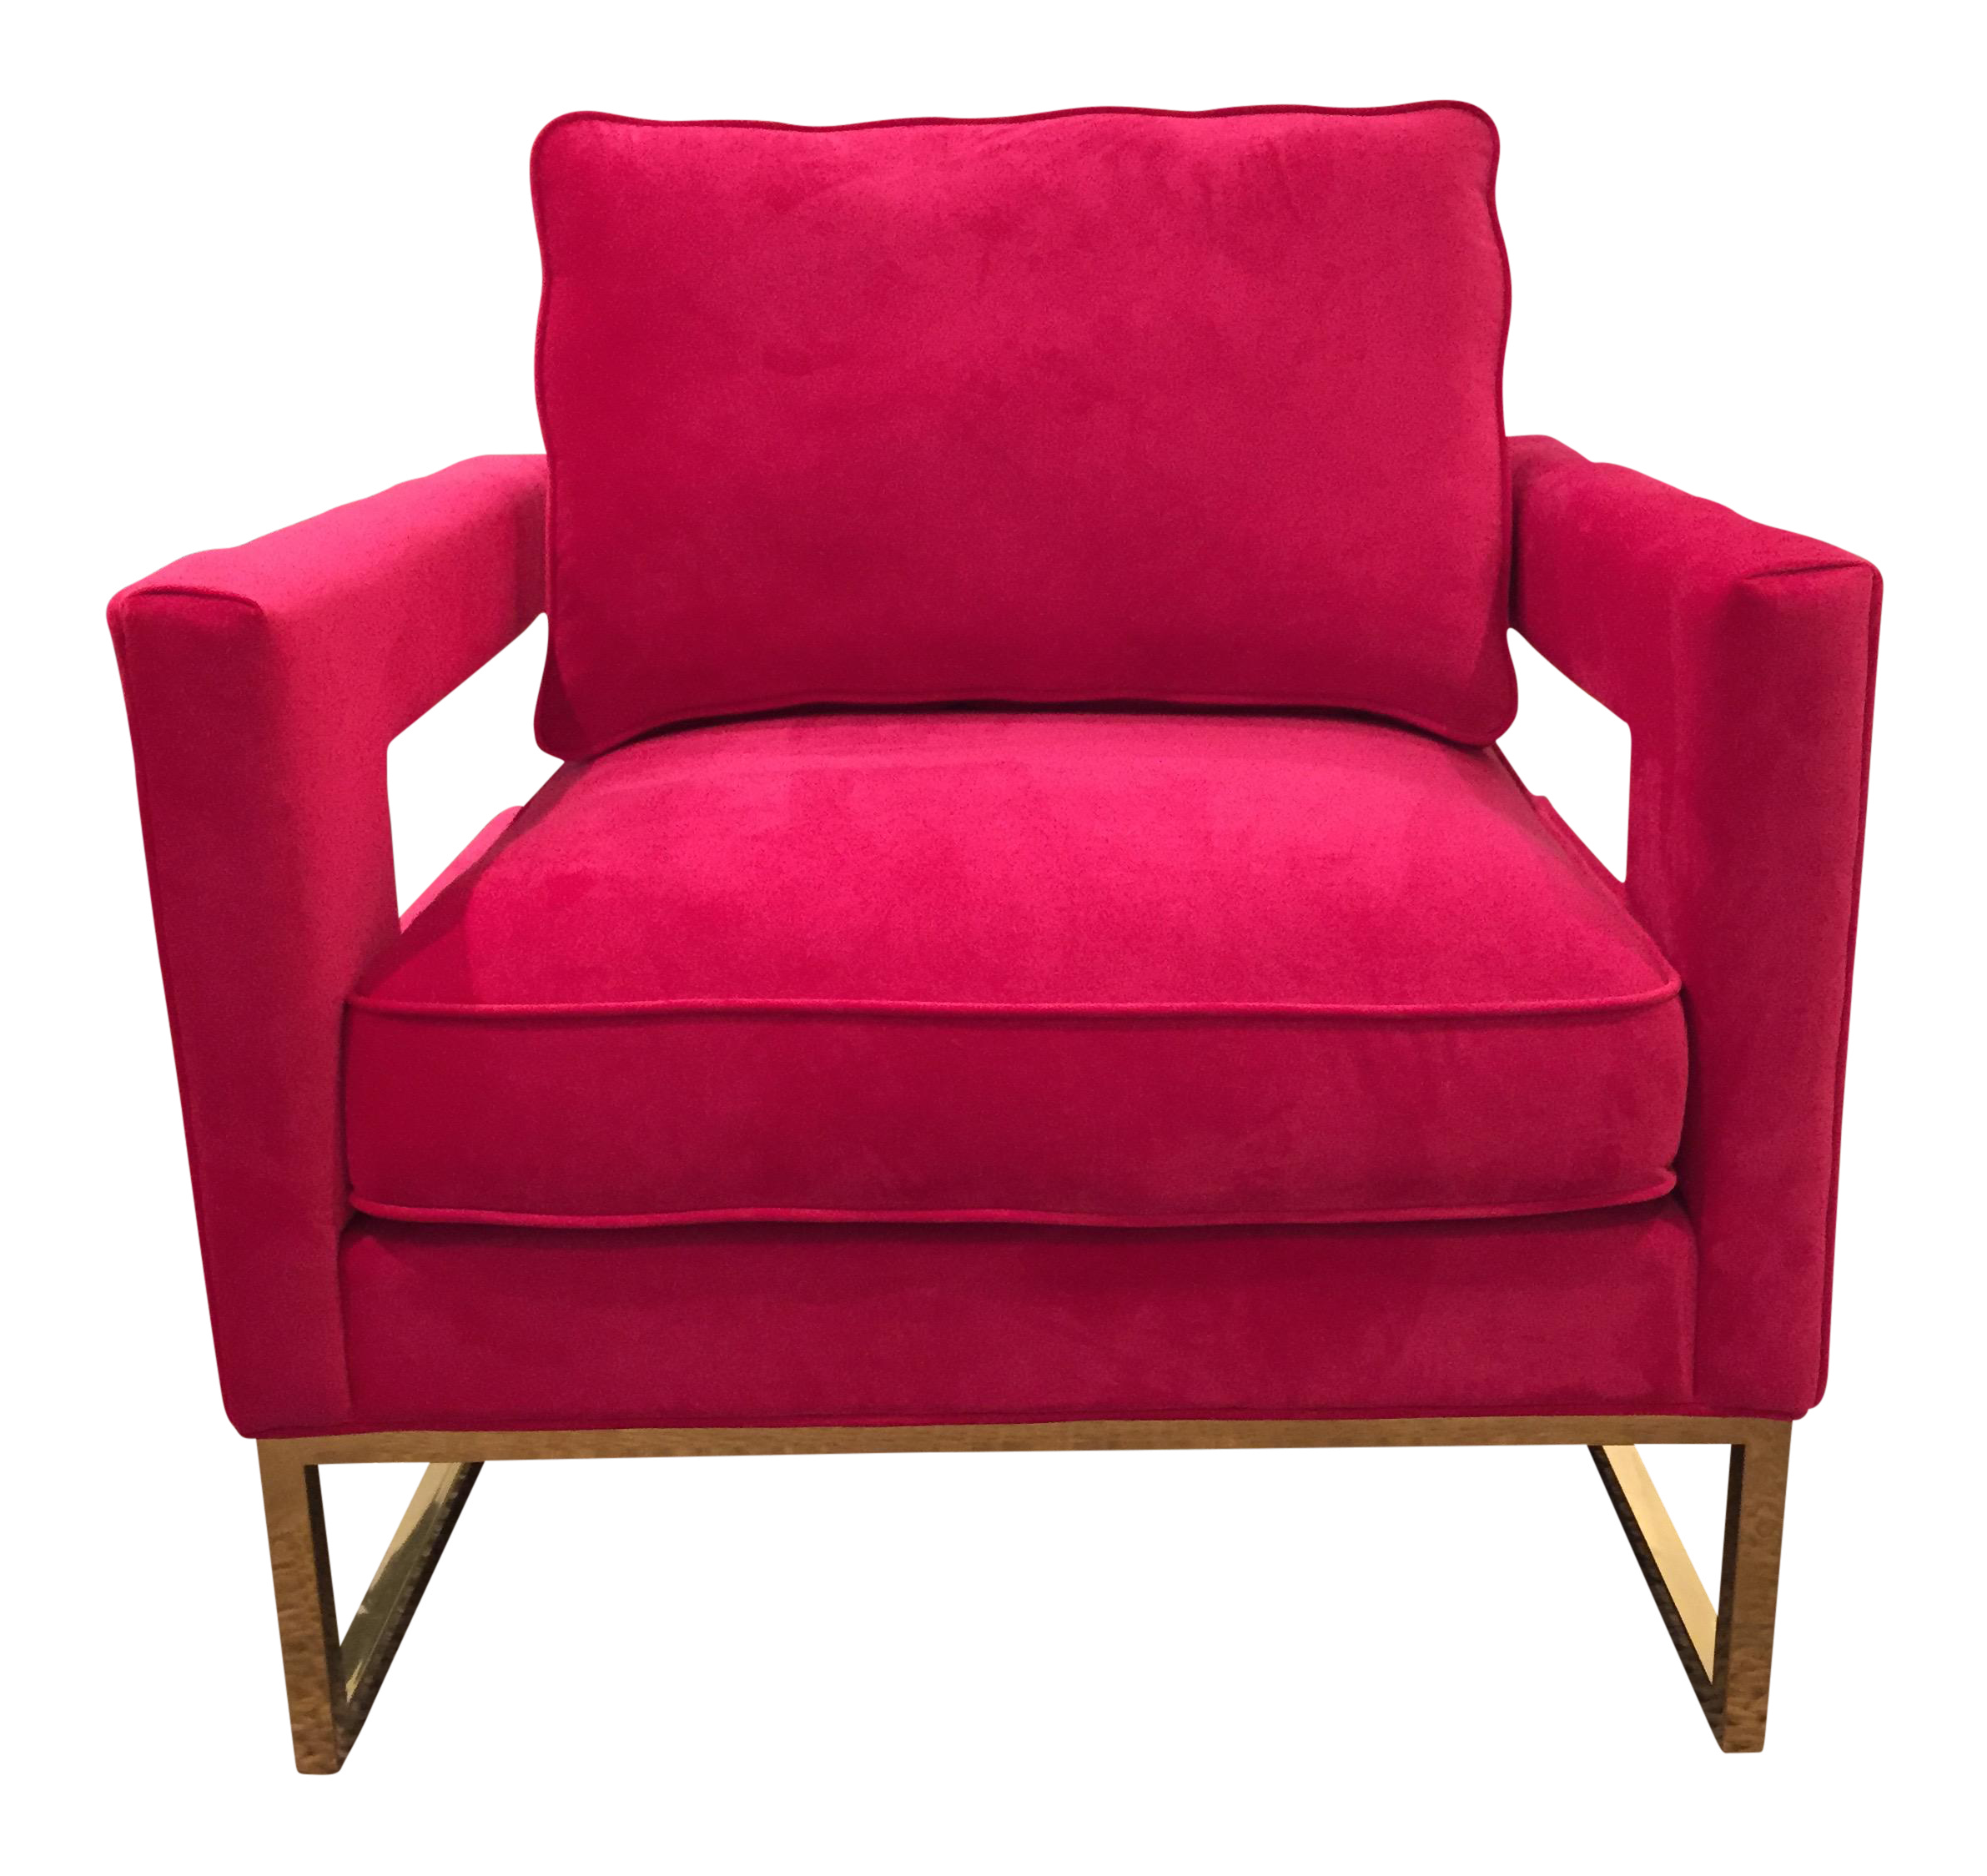 Beau New Hot Pink Velvet Chair For Sale